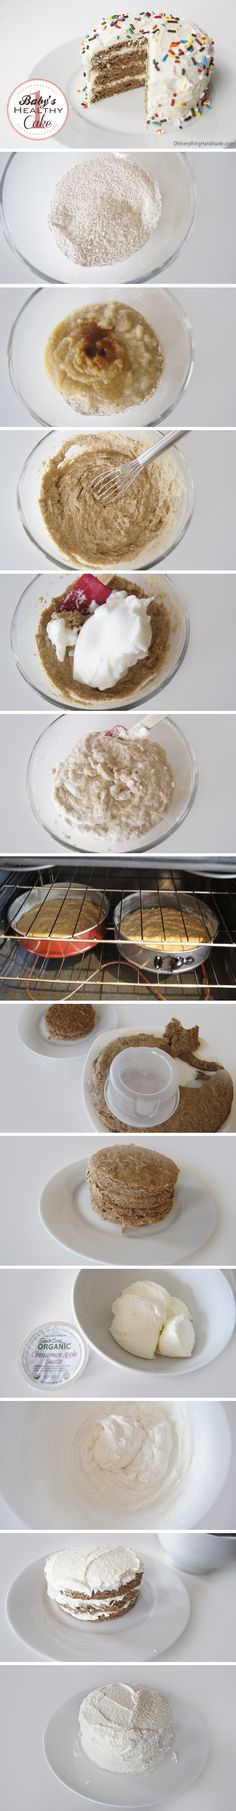 Smash cake first birthday Definitely a do again. Great recipe if you need to use over ripened bananas. Will try honey and whipped cream cheese for birthday cake. Ate warm out of the oven with honey drizzled on top. It was awesome! Baby 1st Birthday, First Birthday Parties, First Birthdays, Birthday Ideas, Birthday Cupcakes, Birthday Celebration, Birthday Gifts, Healthy Birthday Cakes, Healthy Cake